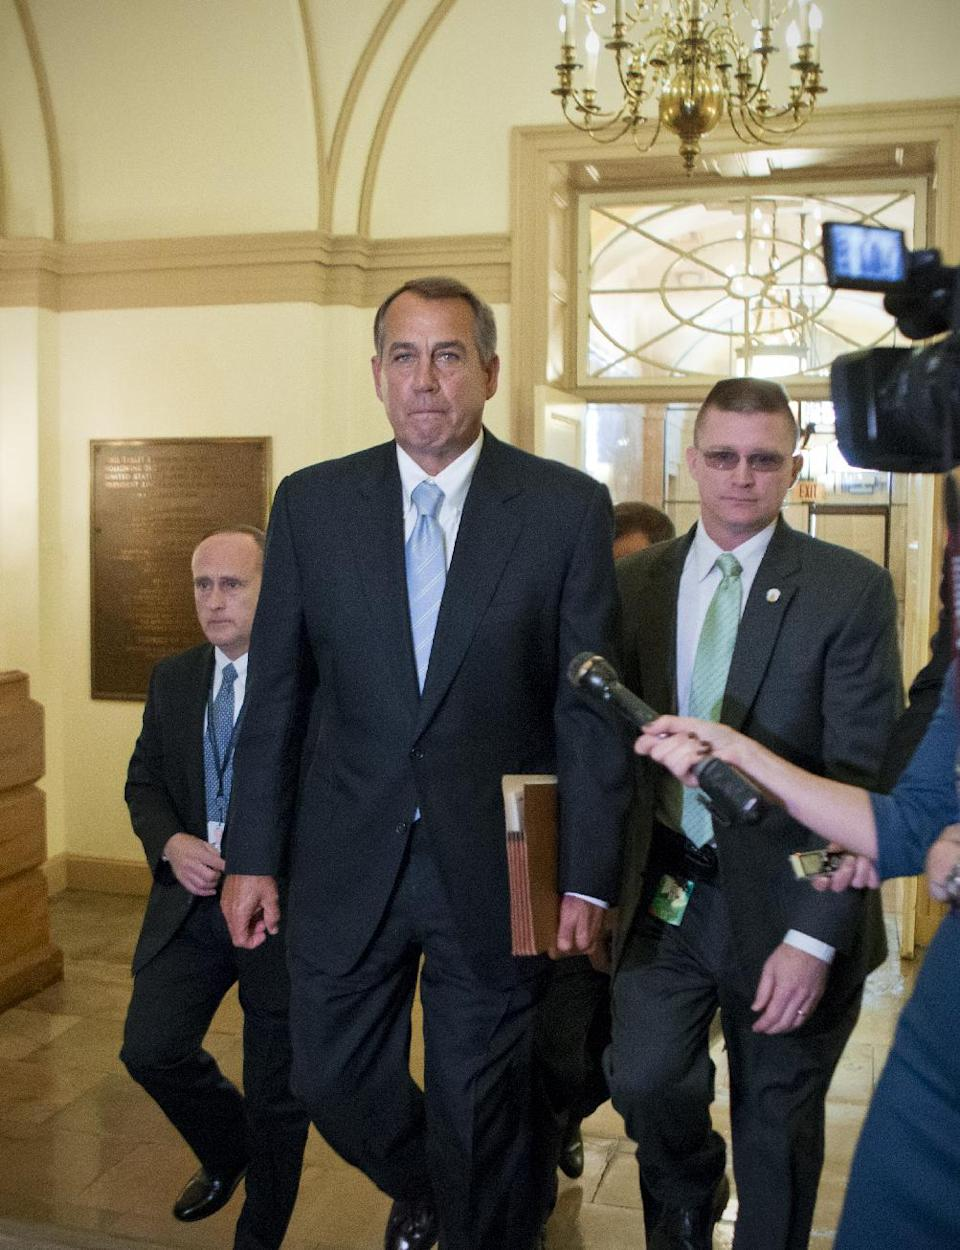 House Speaker John Boehner of Ohio arrives on Capitol Hill in Washington, Friday, March 1, 2103, after a meeting at the White House between President Barack Obama and Congressional leaders before billions of dollars in mandatory budget cuts were to start. The meeting — lasting less than an hour — yielded no immediate results. (AP Photo/J. Scott Applewhite)